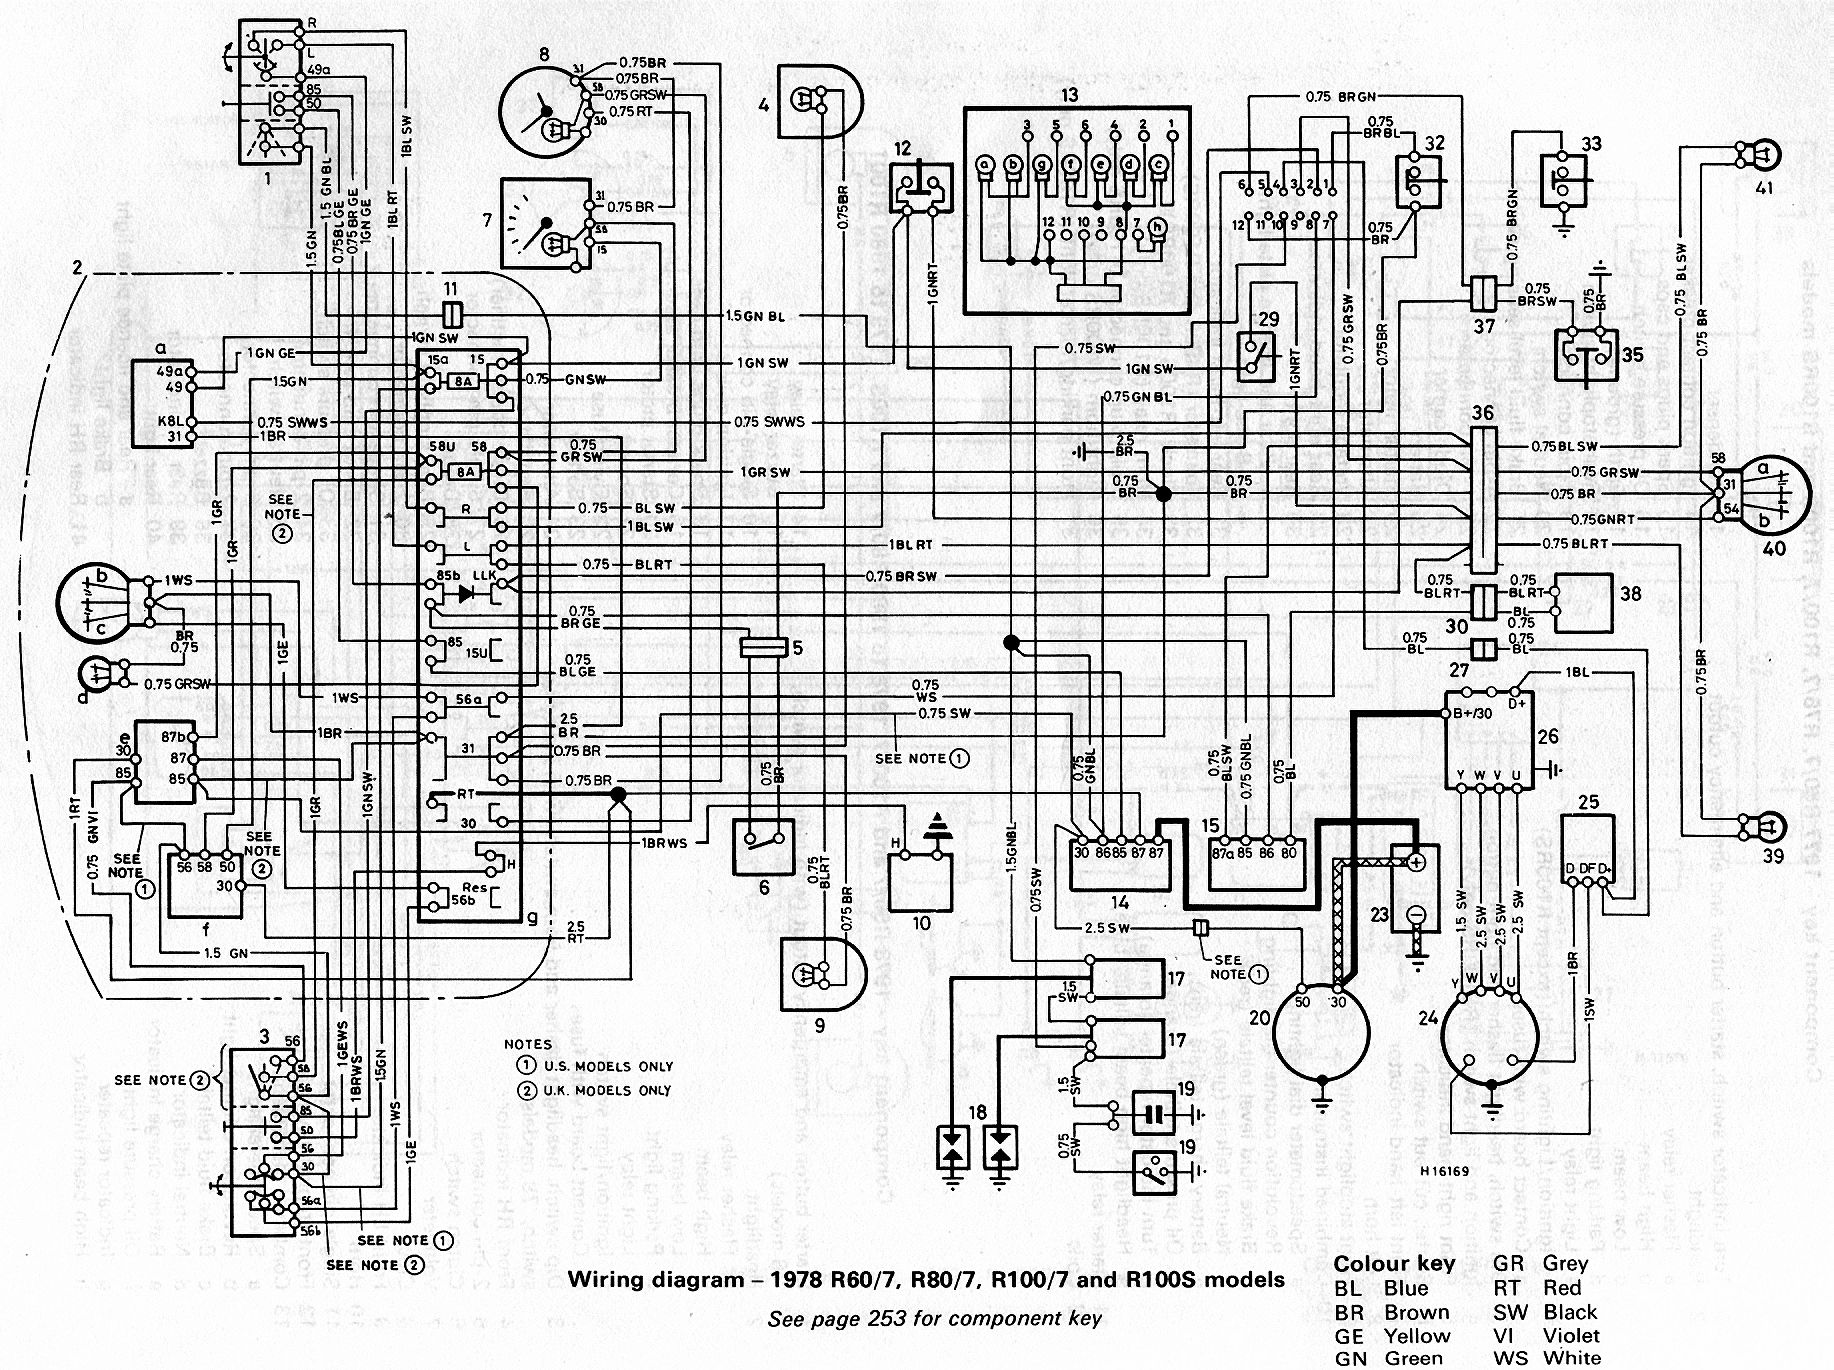 wiring diagram bmw r65ls